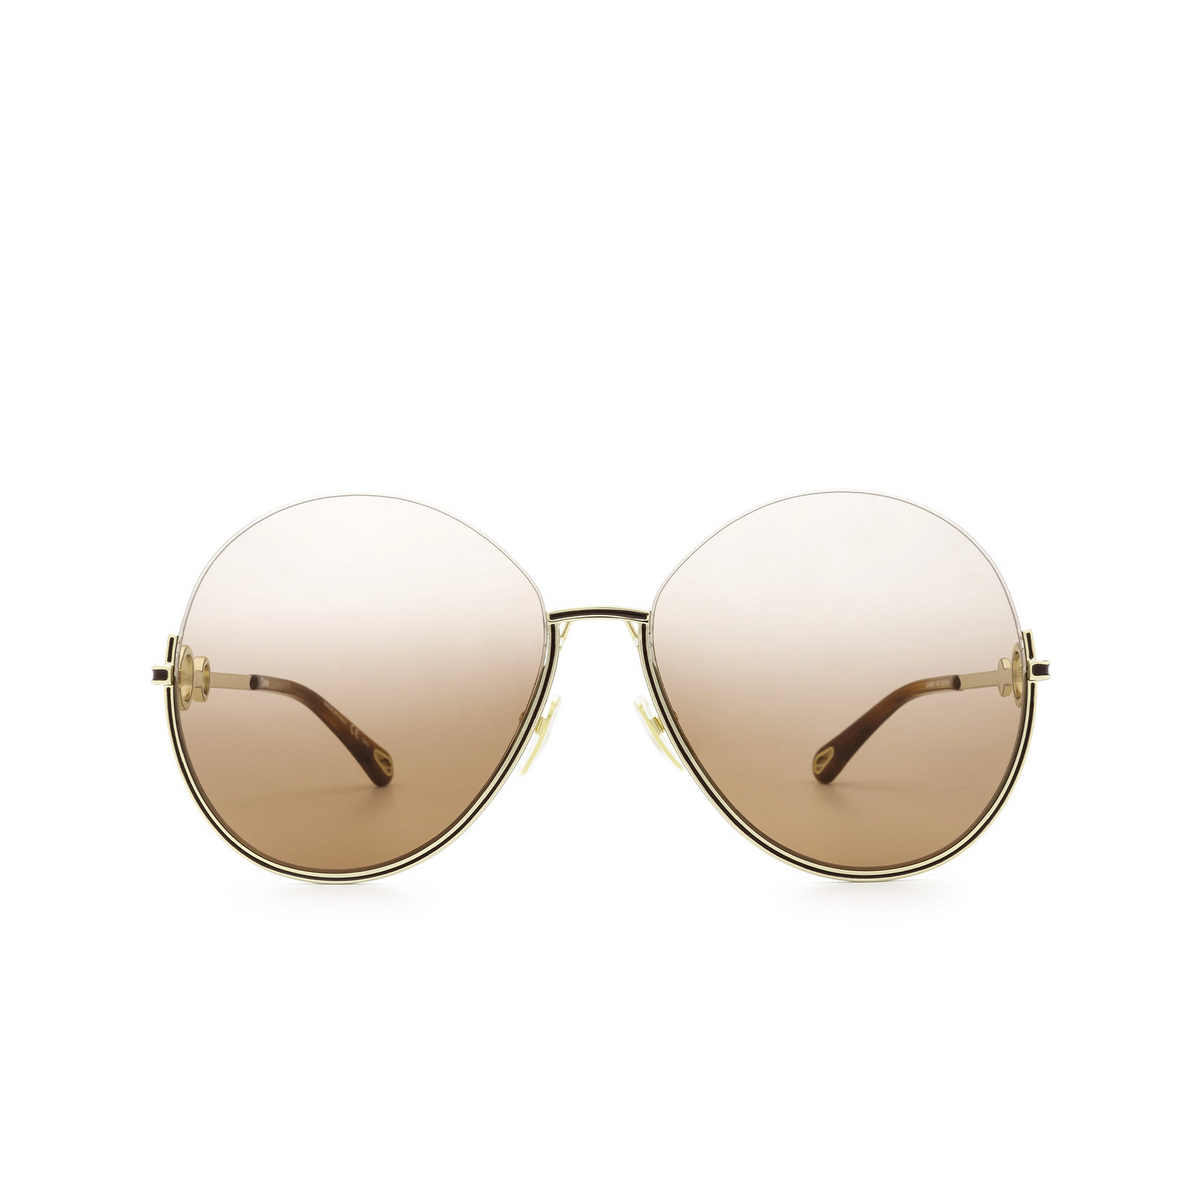 Chloé® Round Sunglasses: CH0067S color Gold 002 - front view.